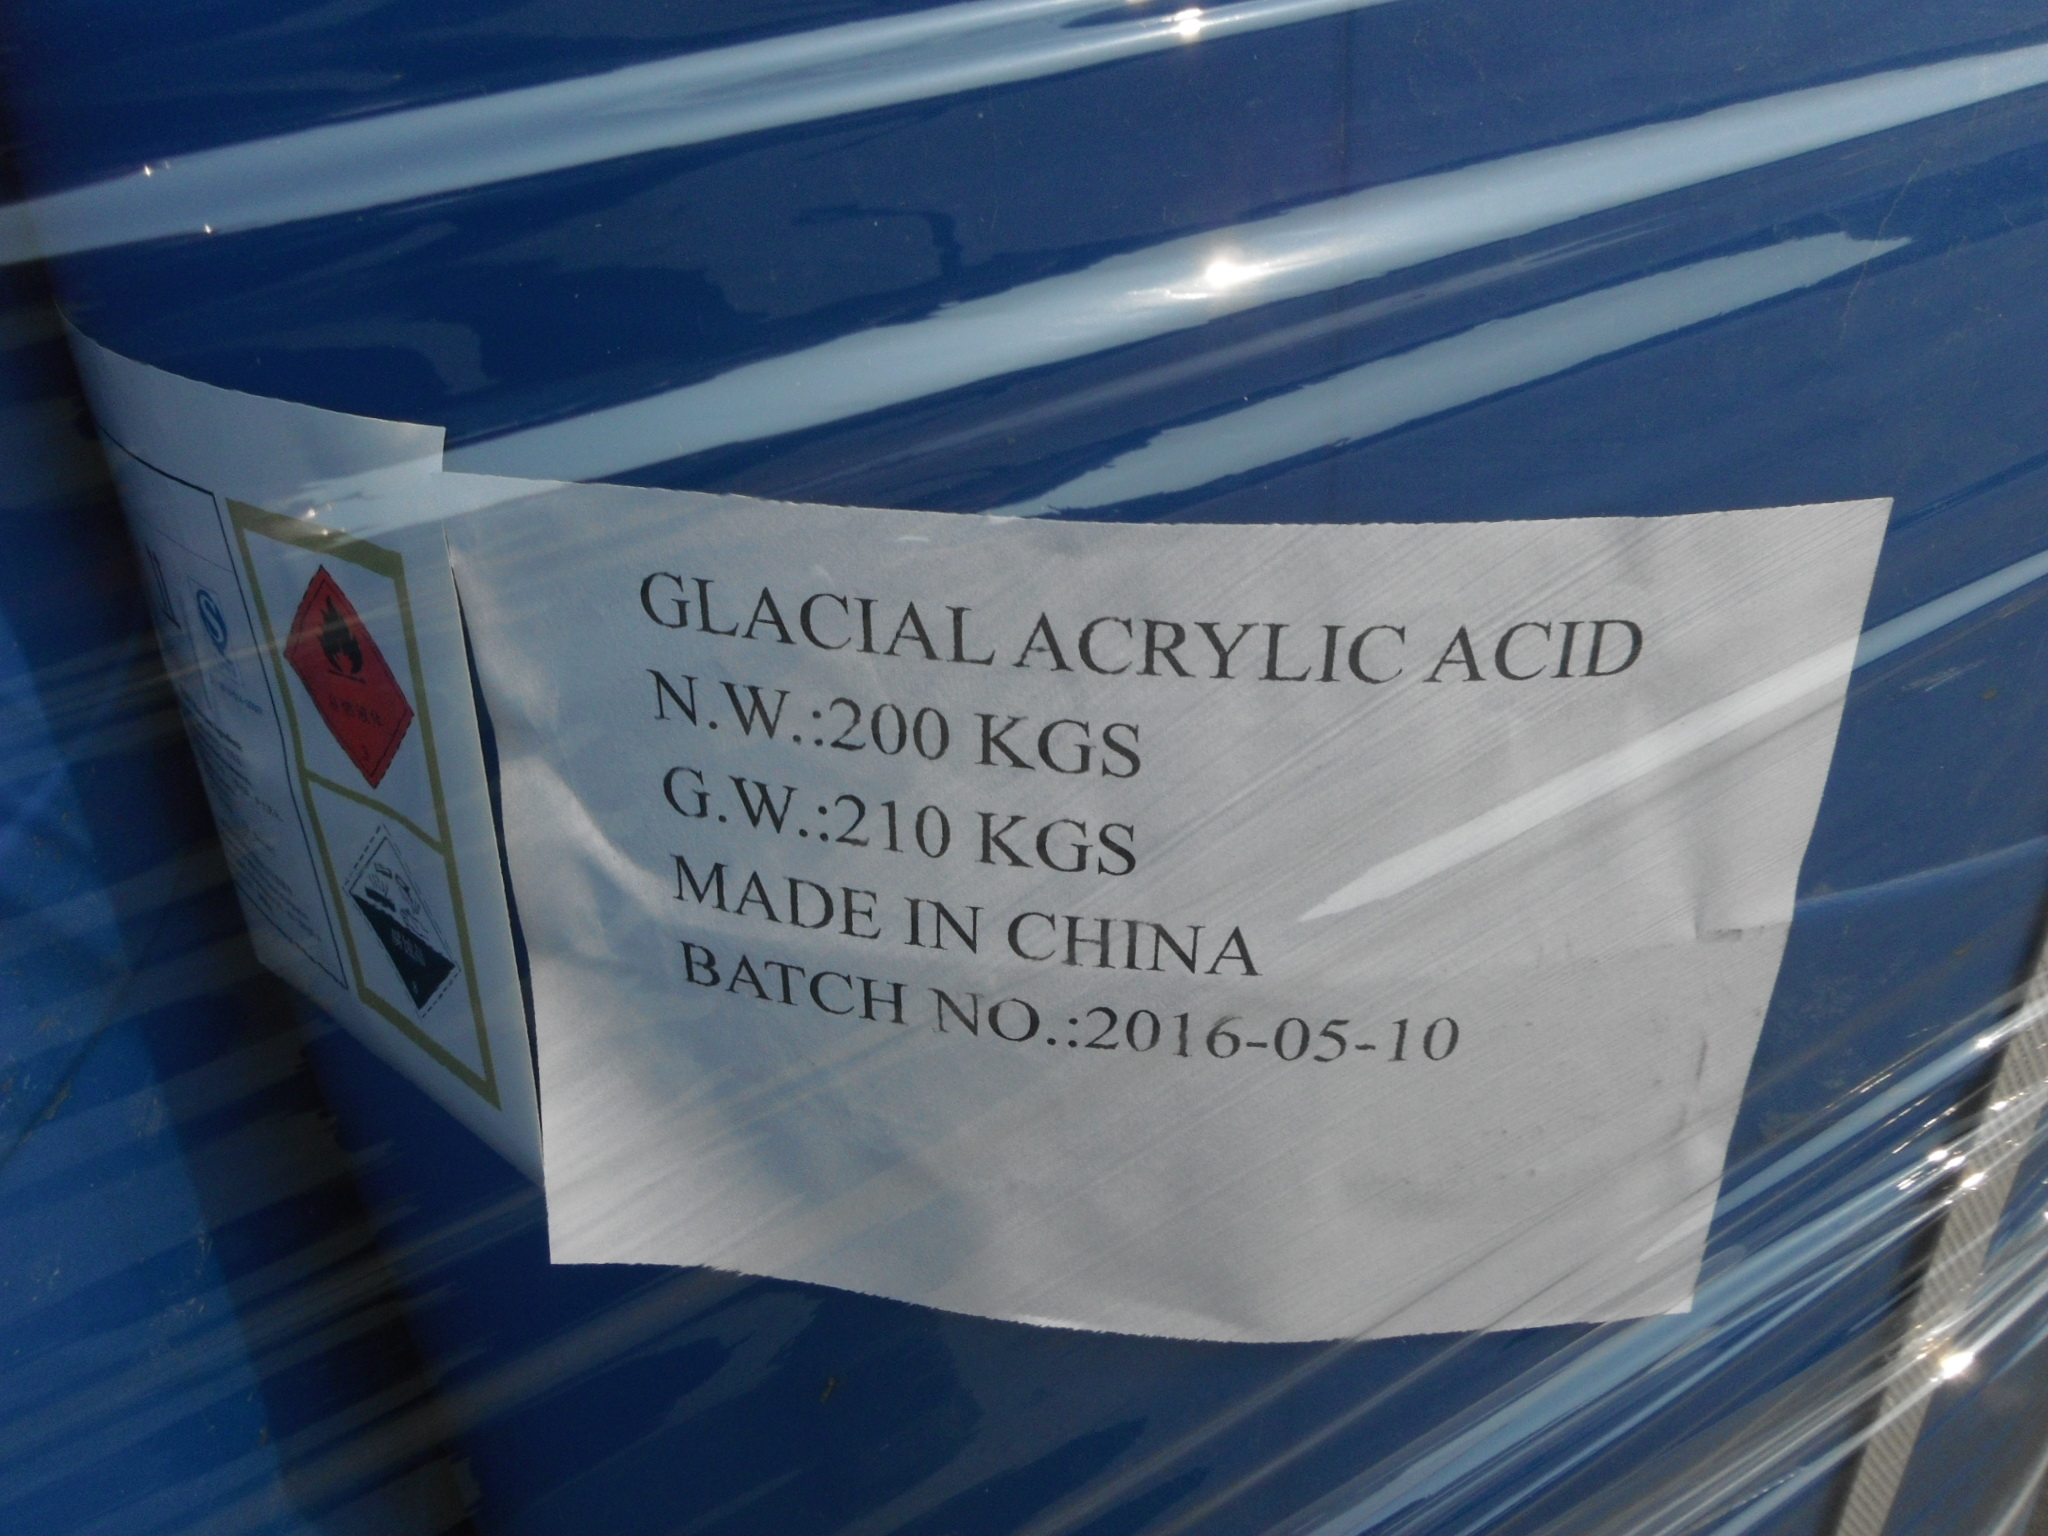 Monomer For Polymer Glacial Acrylic acid